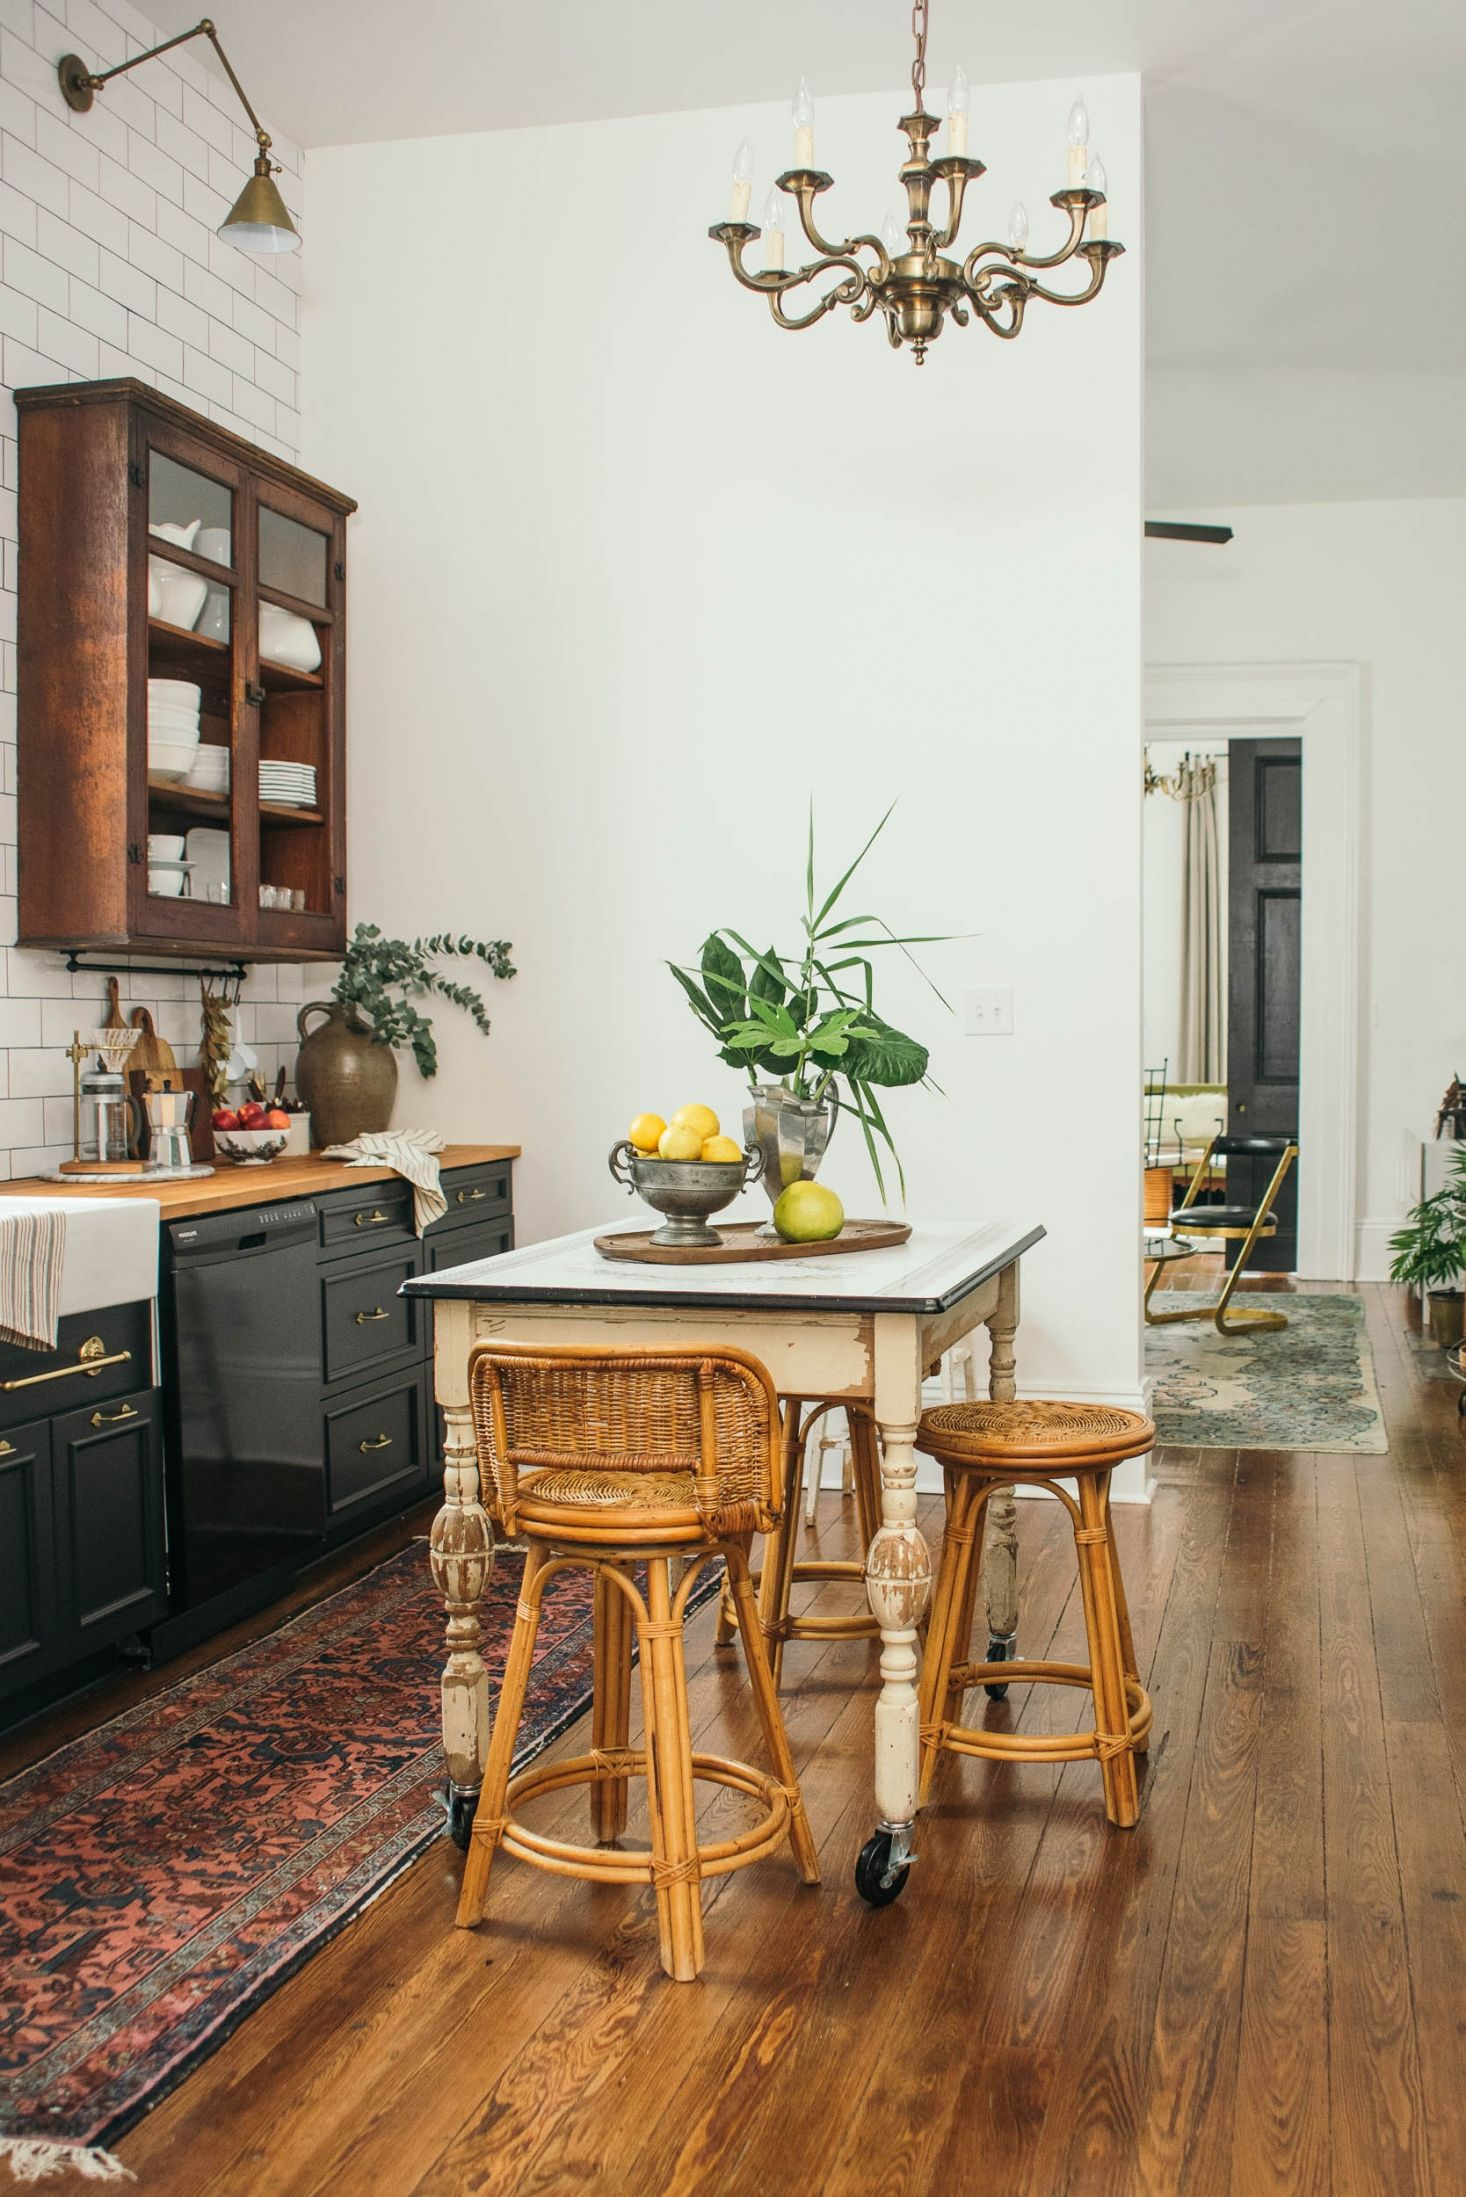 The new southern gothic a rehabbed shotgun house in new orleans parlour dailygadgetfo Images